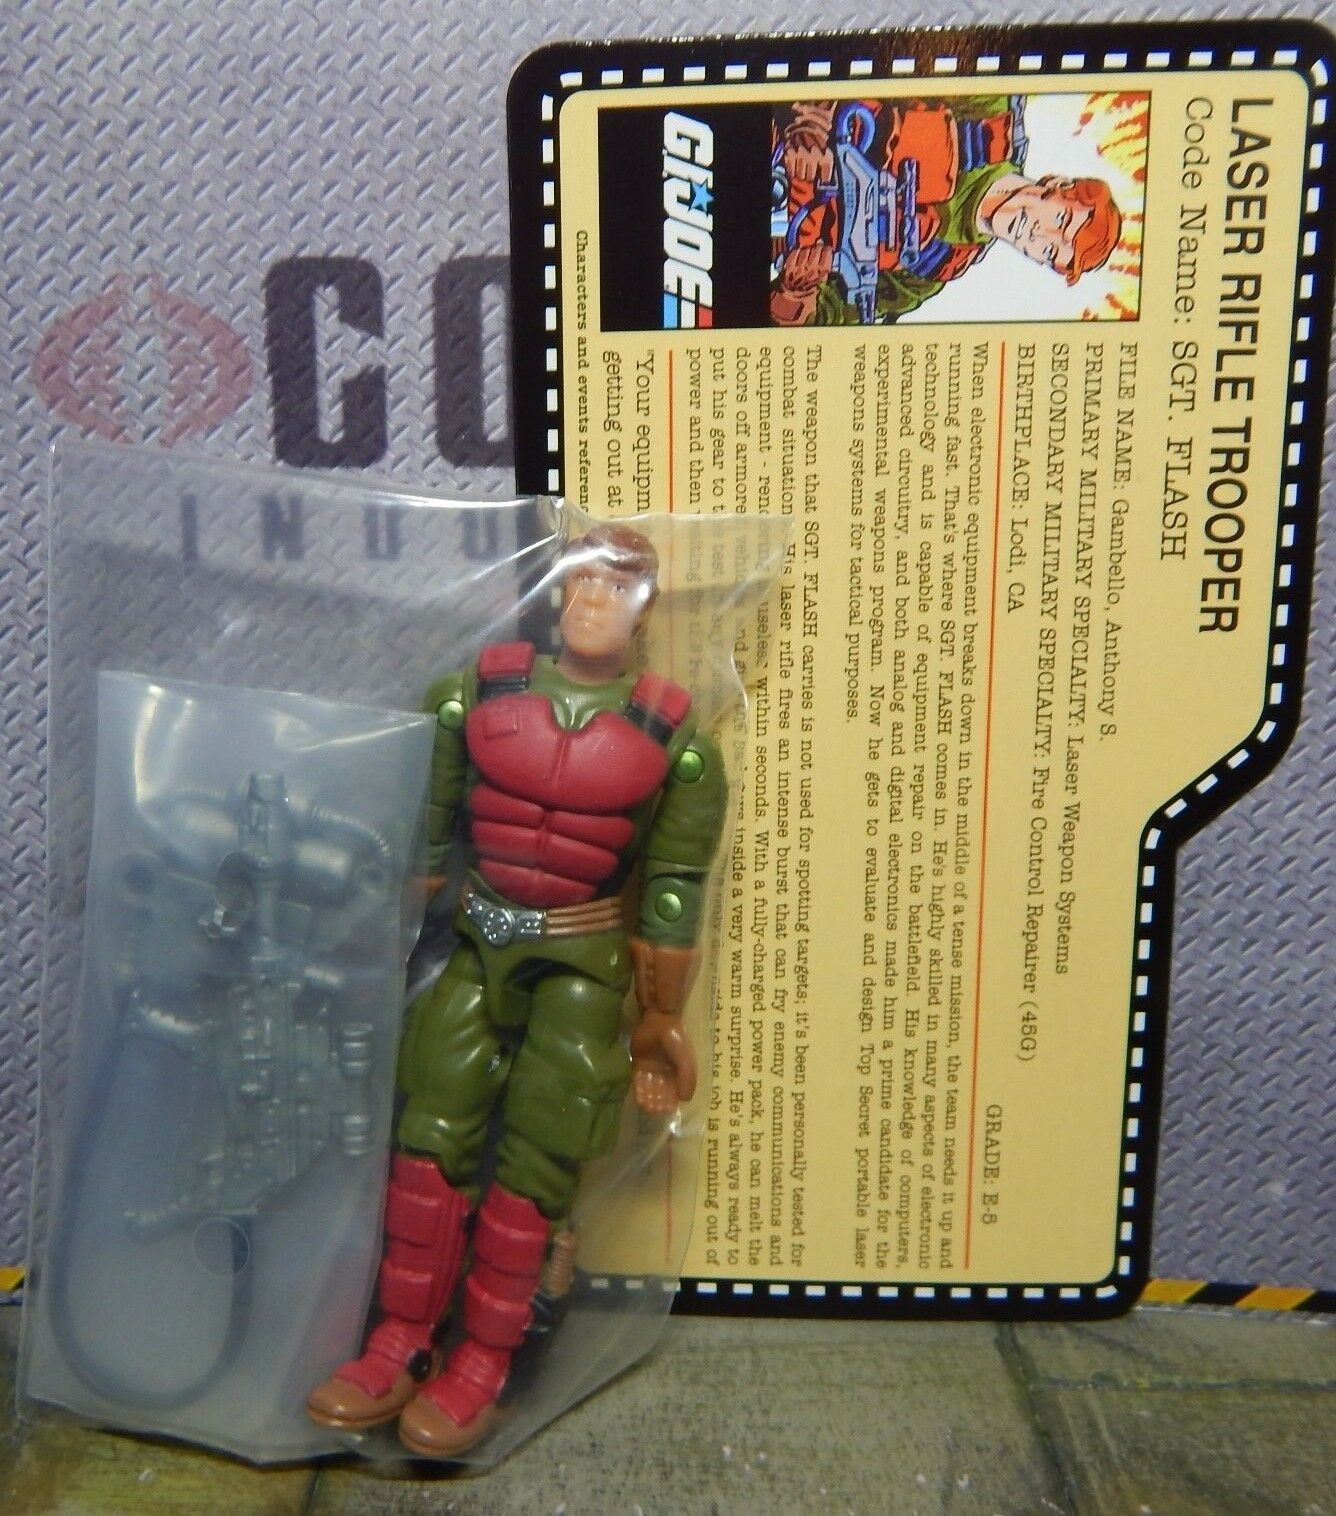 GI JOE  2007 FLASH   MISB   EXCLUSIVE JOECON  TANKS FOR THE MEMORIES 1982